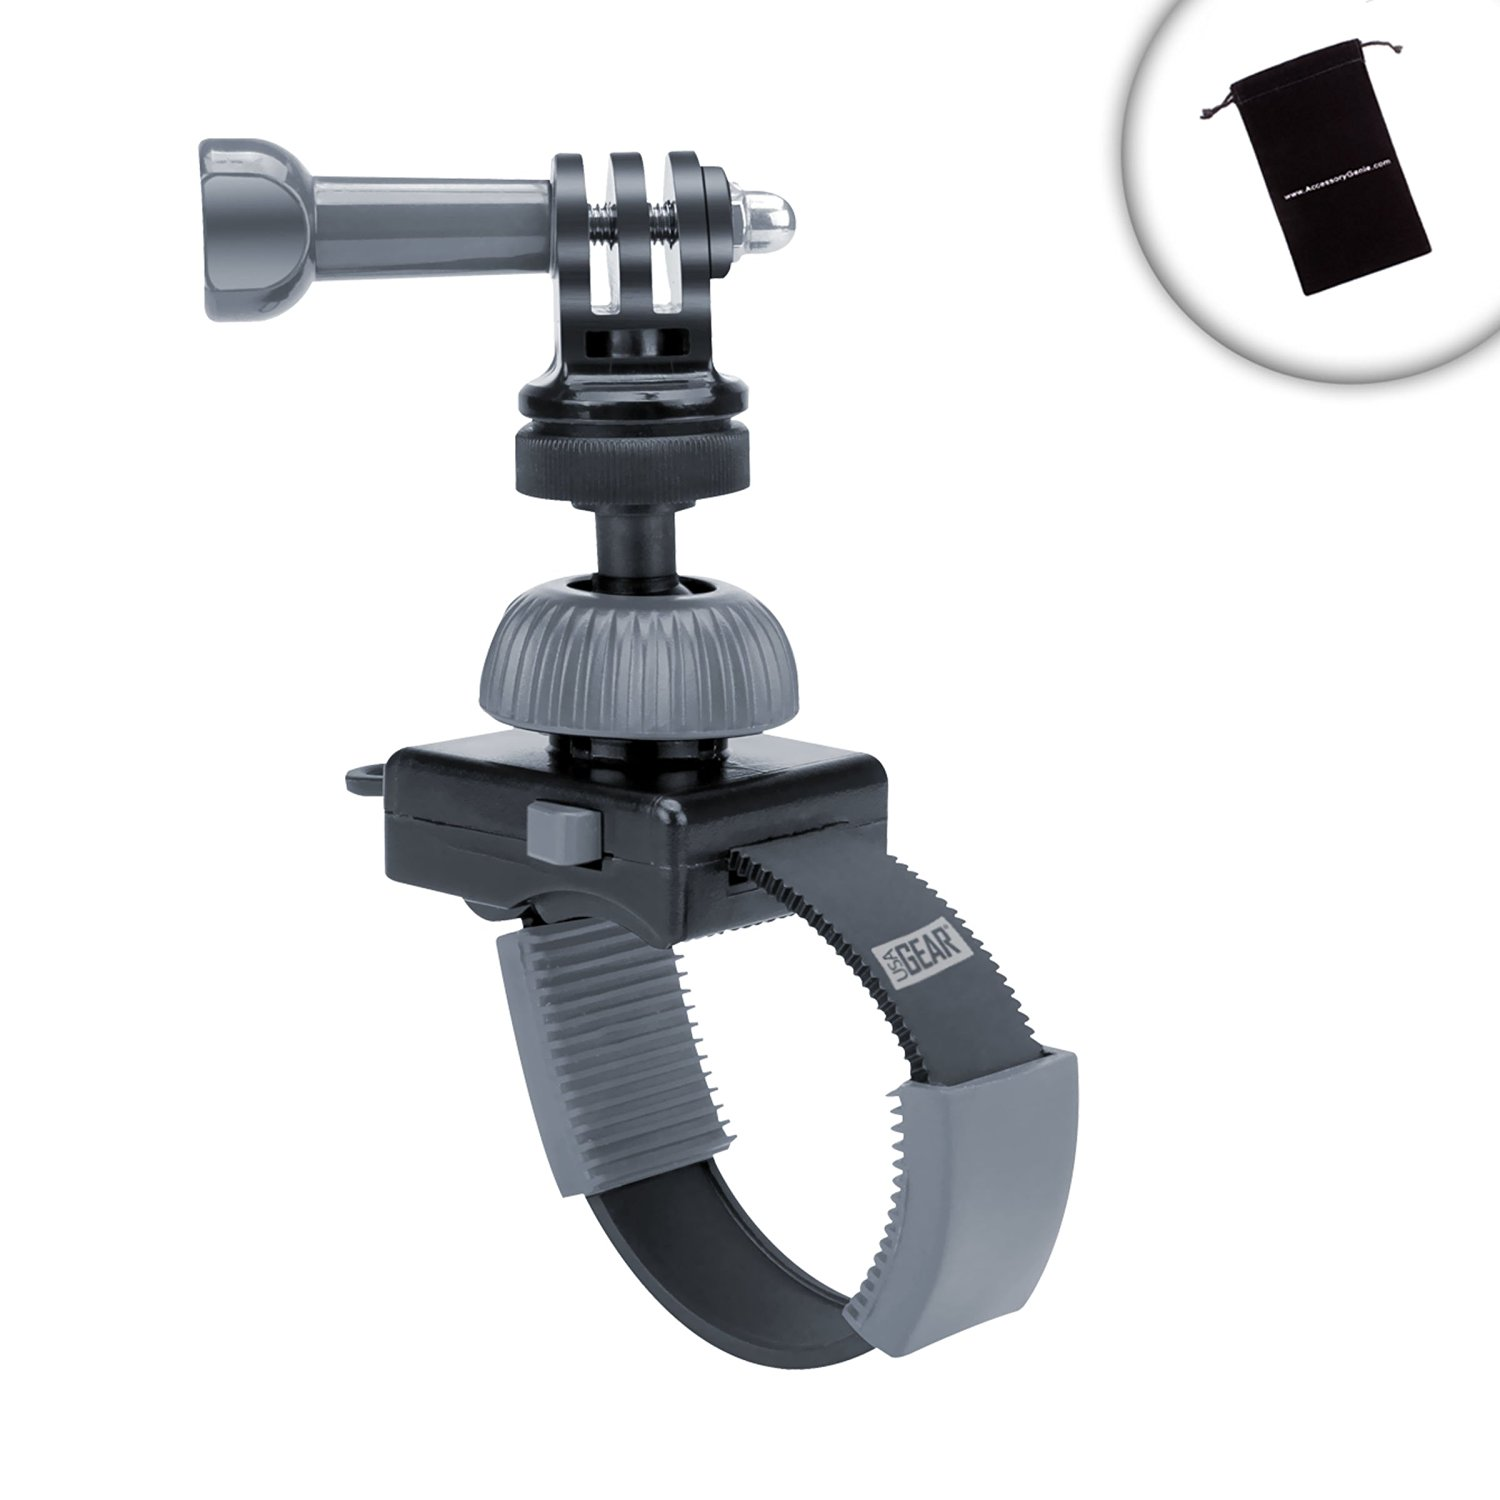 Zipper Style Tough Camera Mount with 360 Degree Rotating Ball Head by USA Gear - Works With Sony Cyber-shot DSC-TX30 , Canon PowerShot D30 , Nikon Coolpix S33 and More